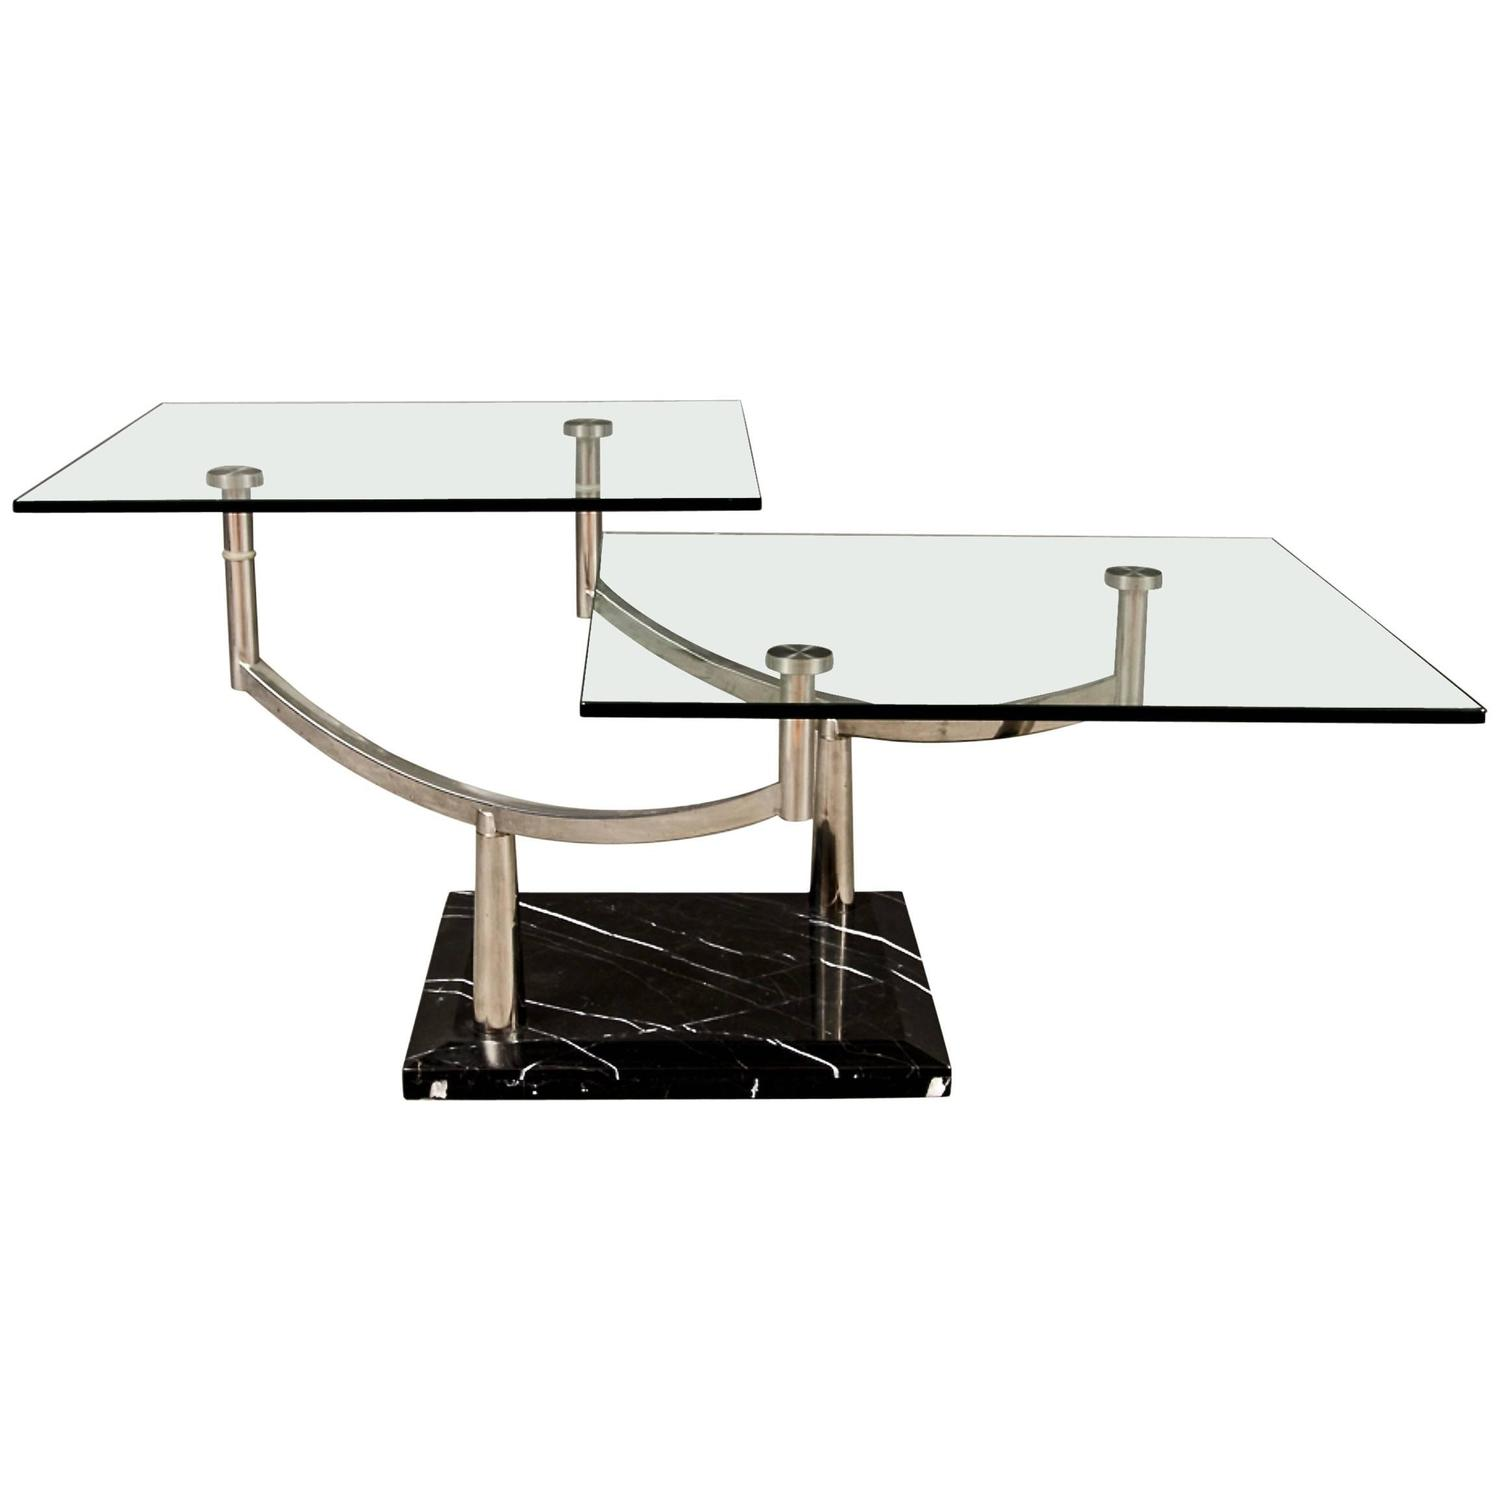 Chrome X Frame Coffee Table: Two-Level Glass Coffee Table With Chrome Frame On Marble